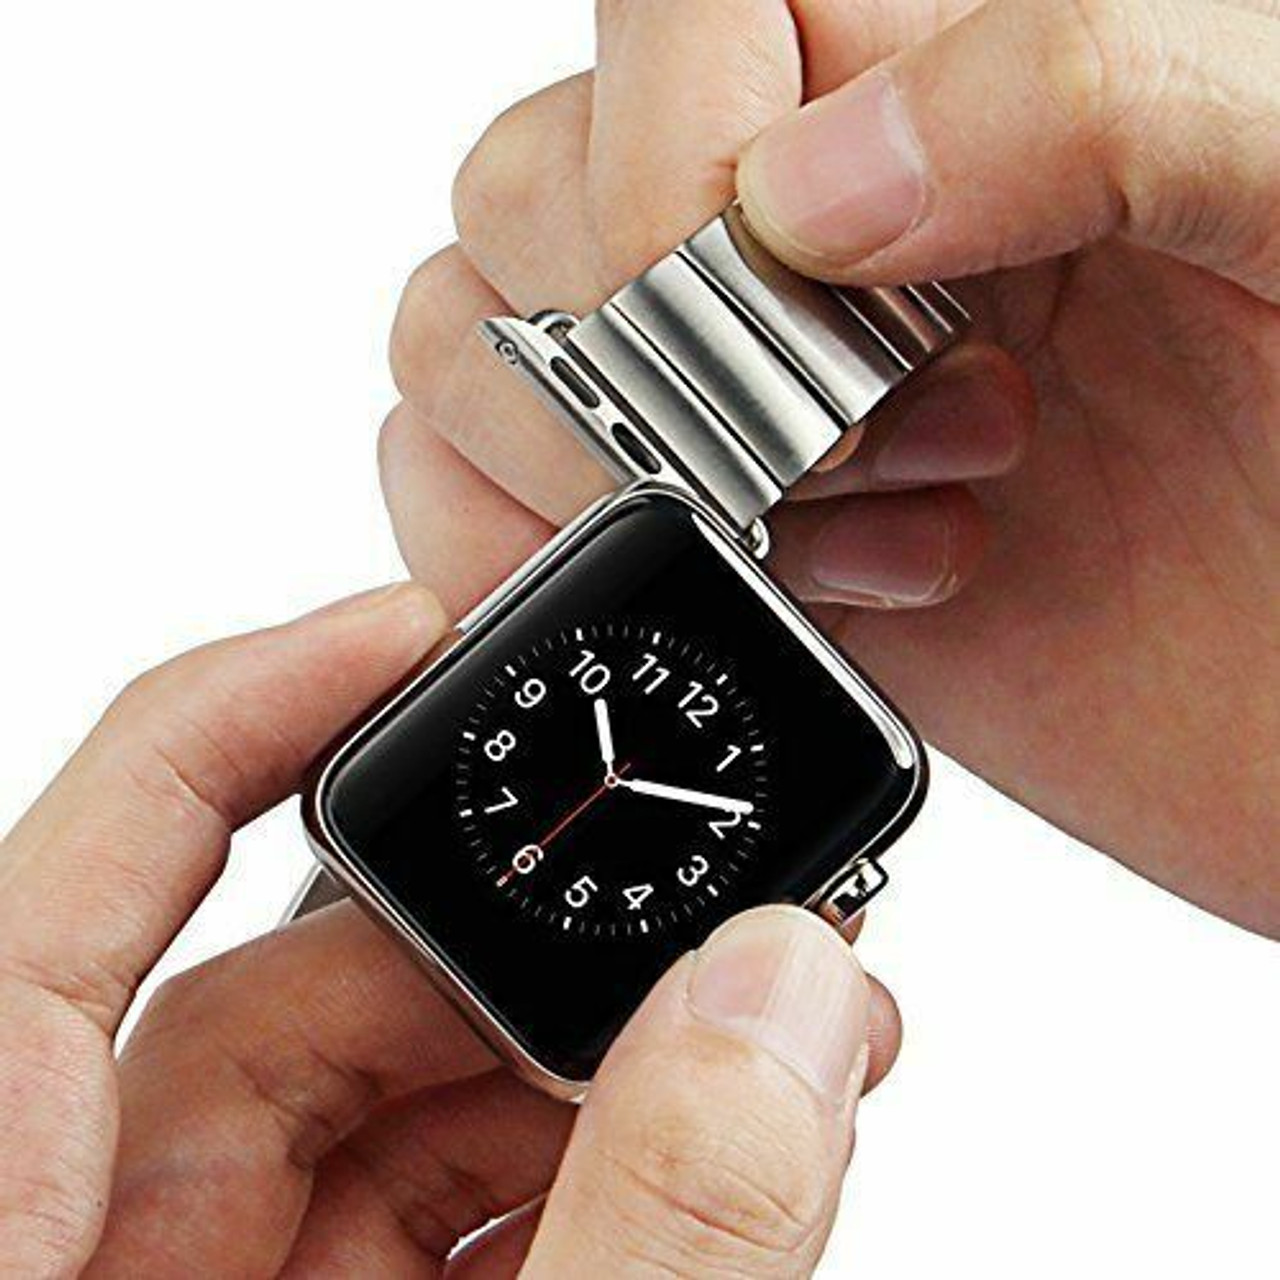 38mm 42mm Watch Band Connector Adapter Stainless Steel For Apple Watch iWatch US